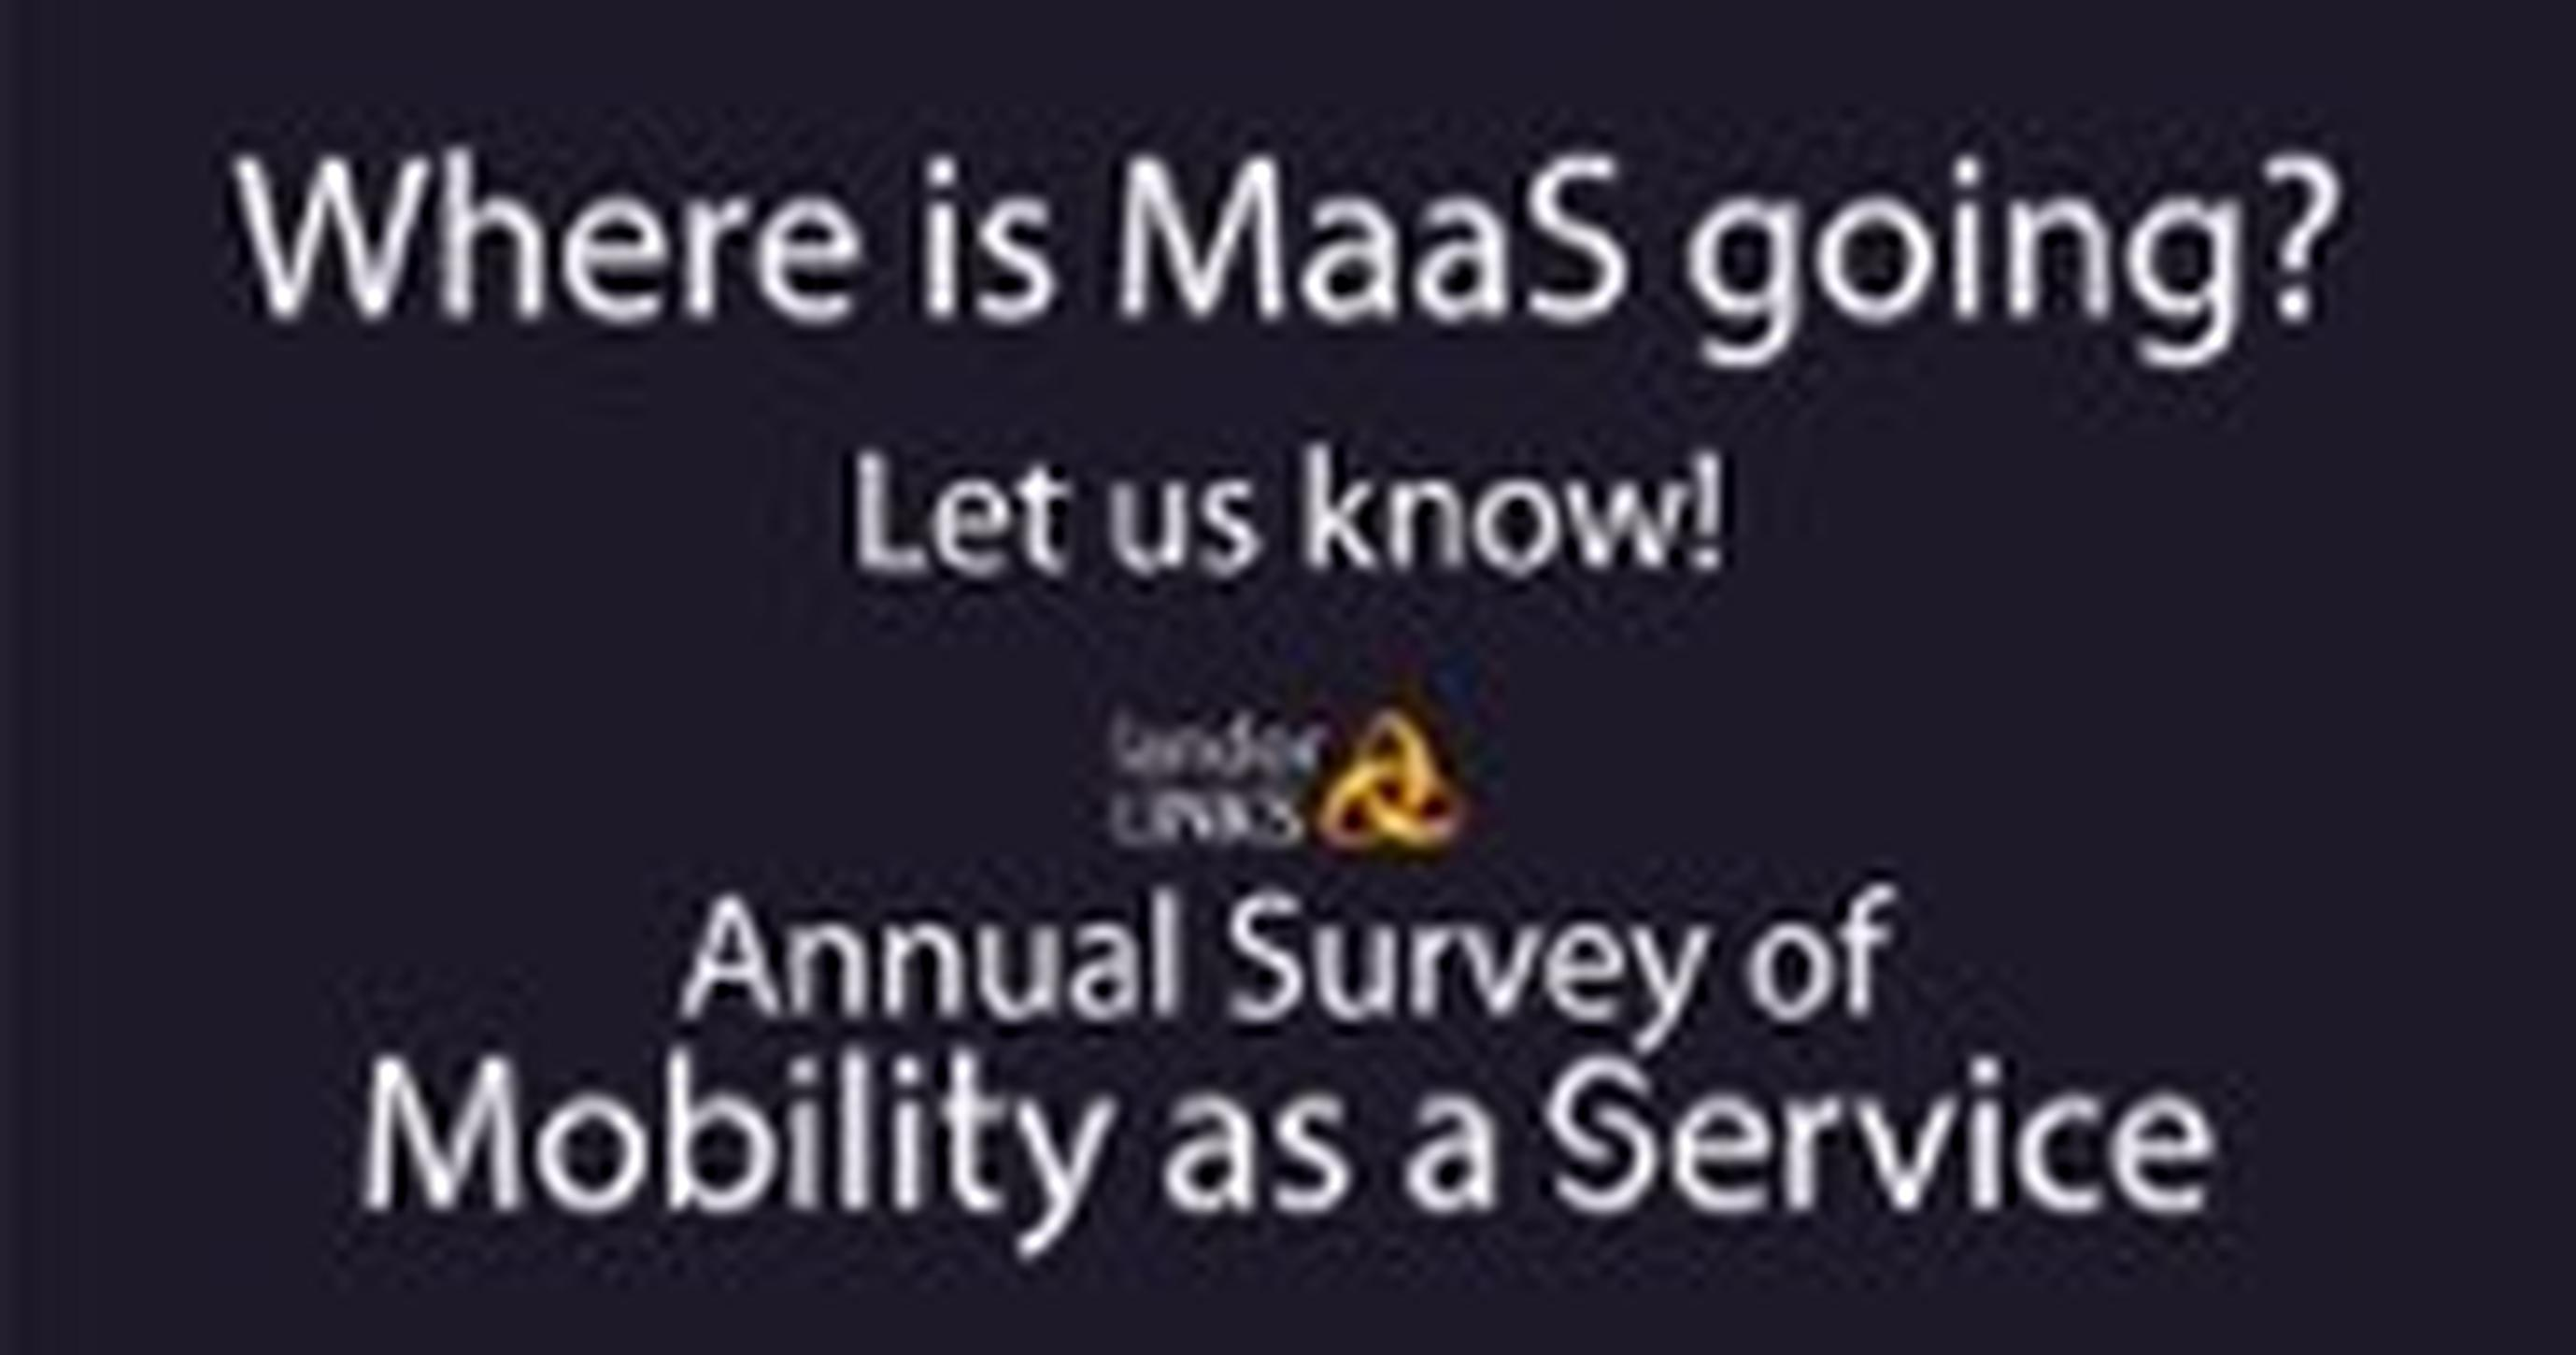 The world of MaaS is ever changing, and you can help us tell the story